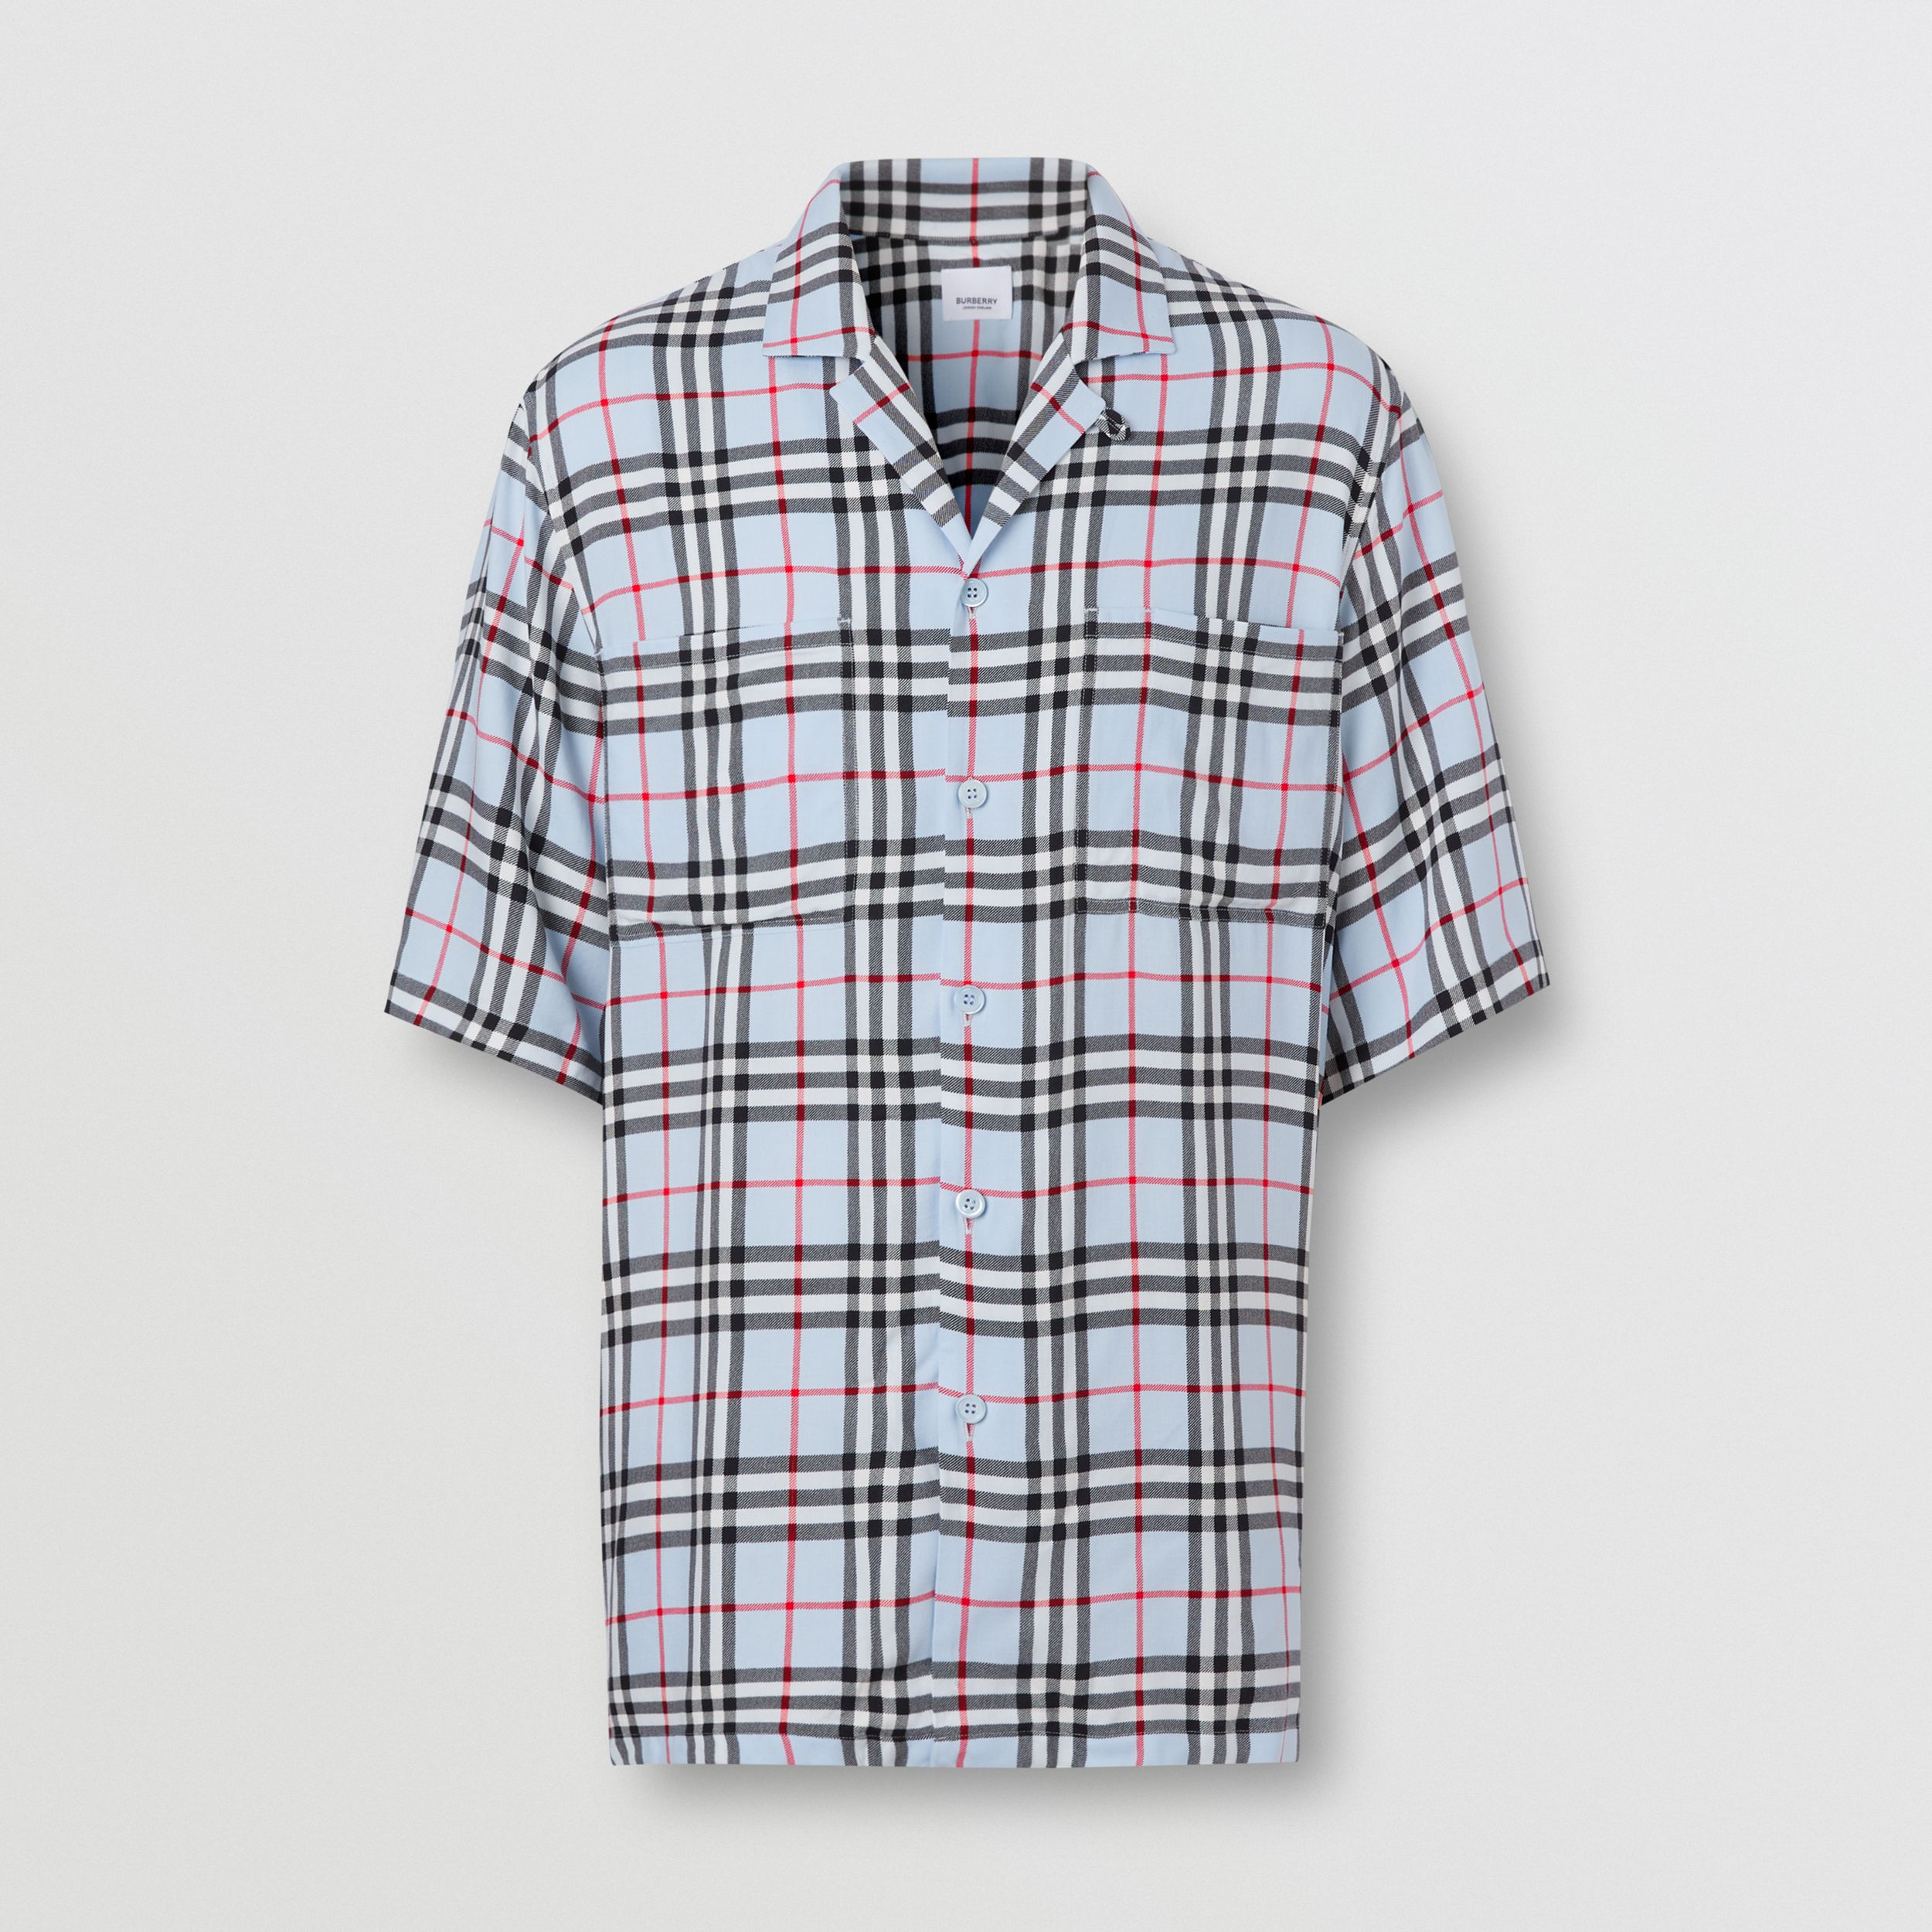 Short-sleeve Vintage Check Twill Shirt in Pale Blue - Men | Burberry Australia - 4